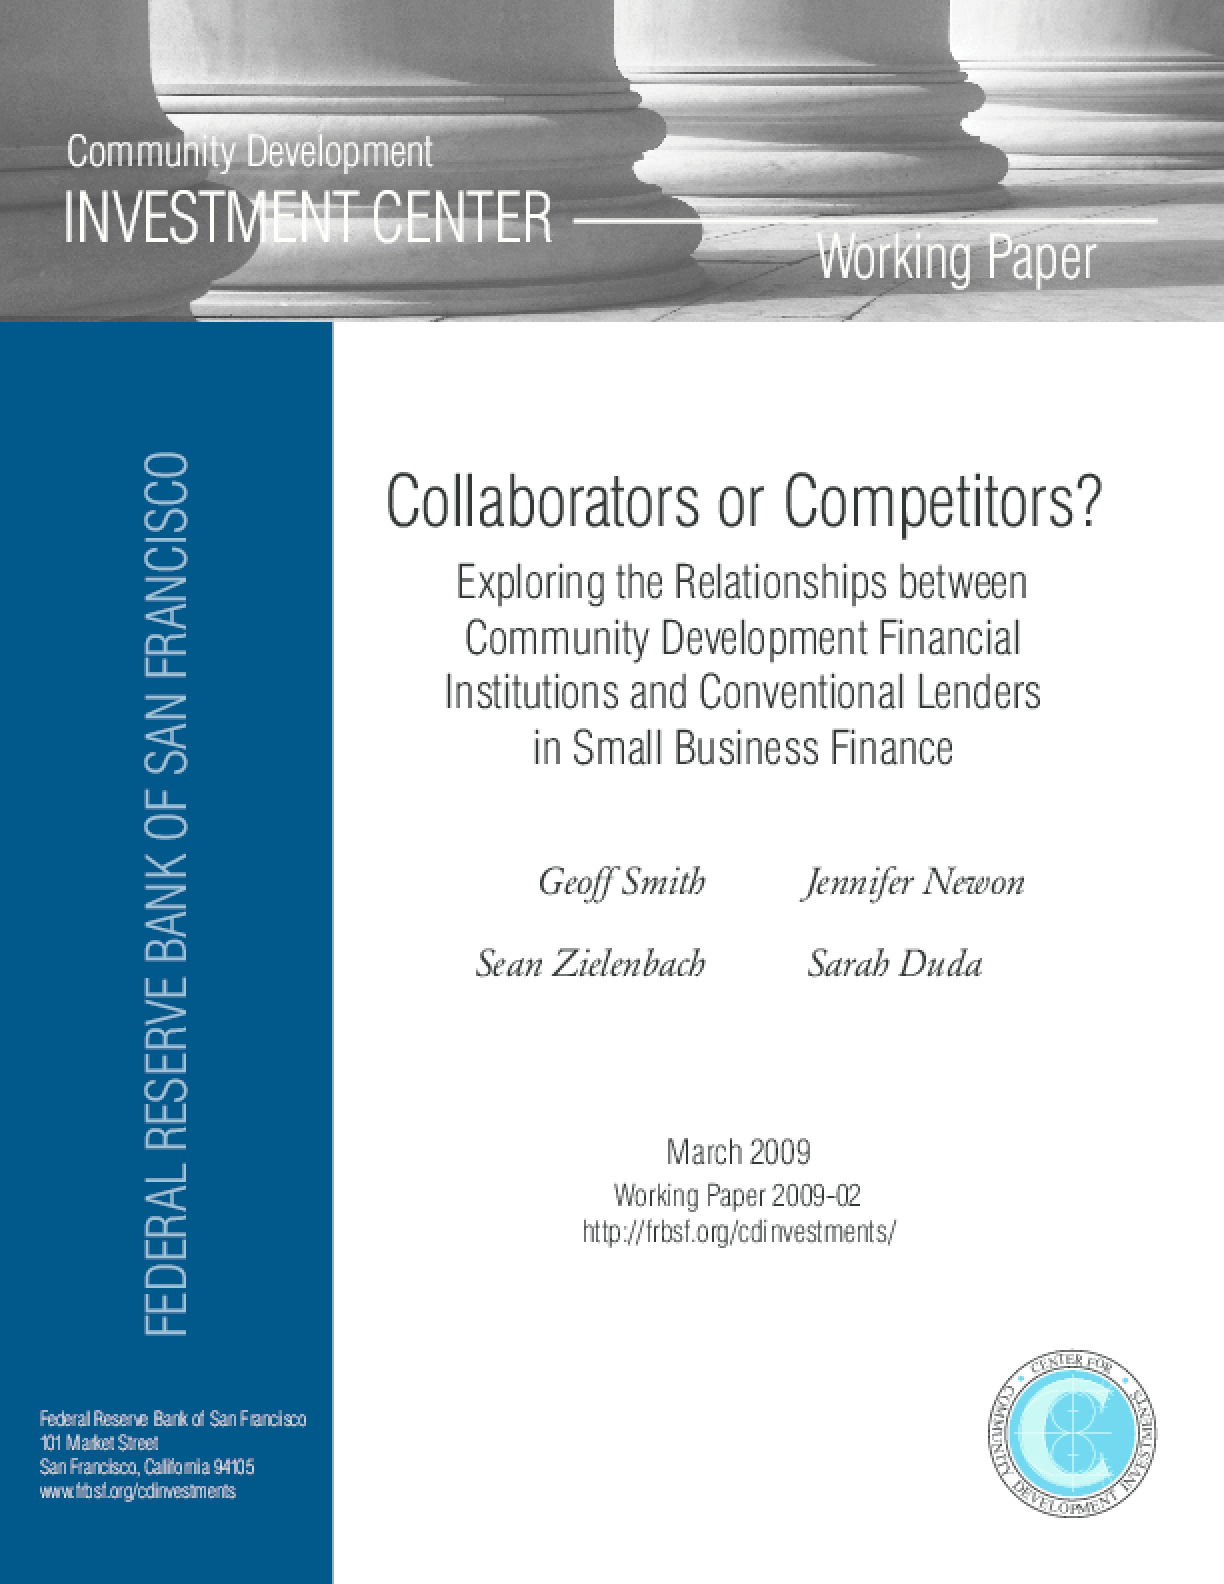 Collaborators or Competitors? Exploring the Relationships between Community Development Financial Institutions and Conventional Lenders in Small Business Finance